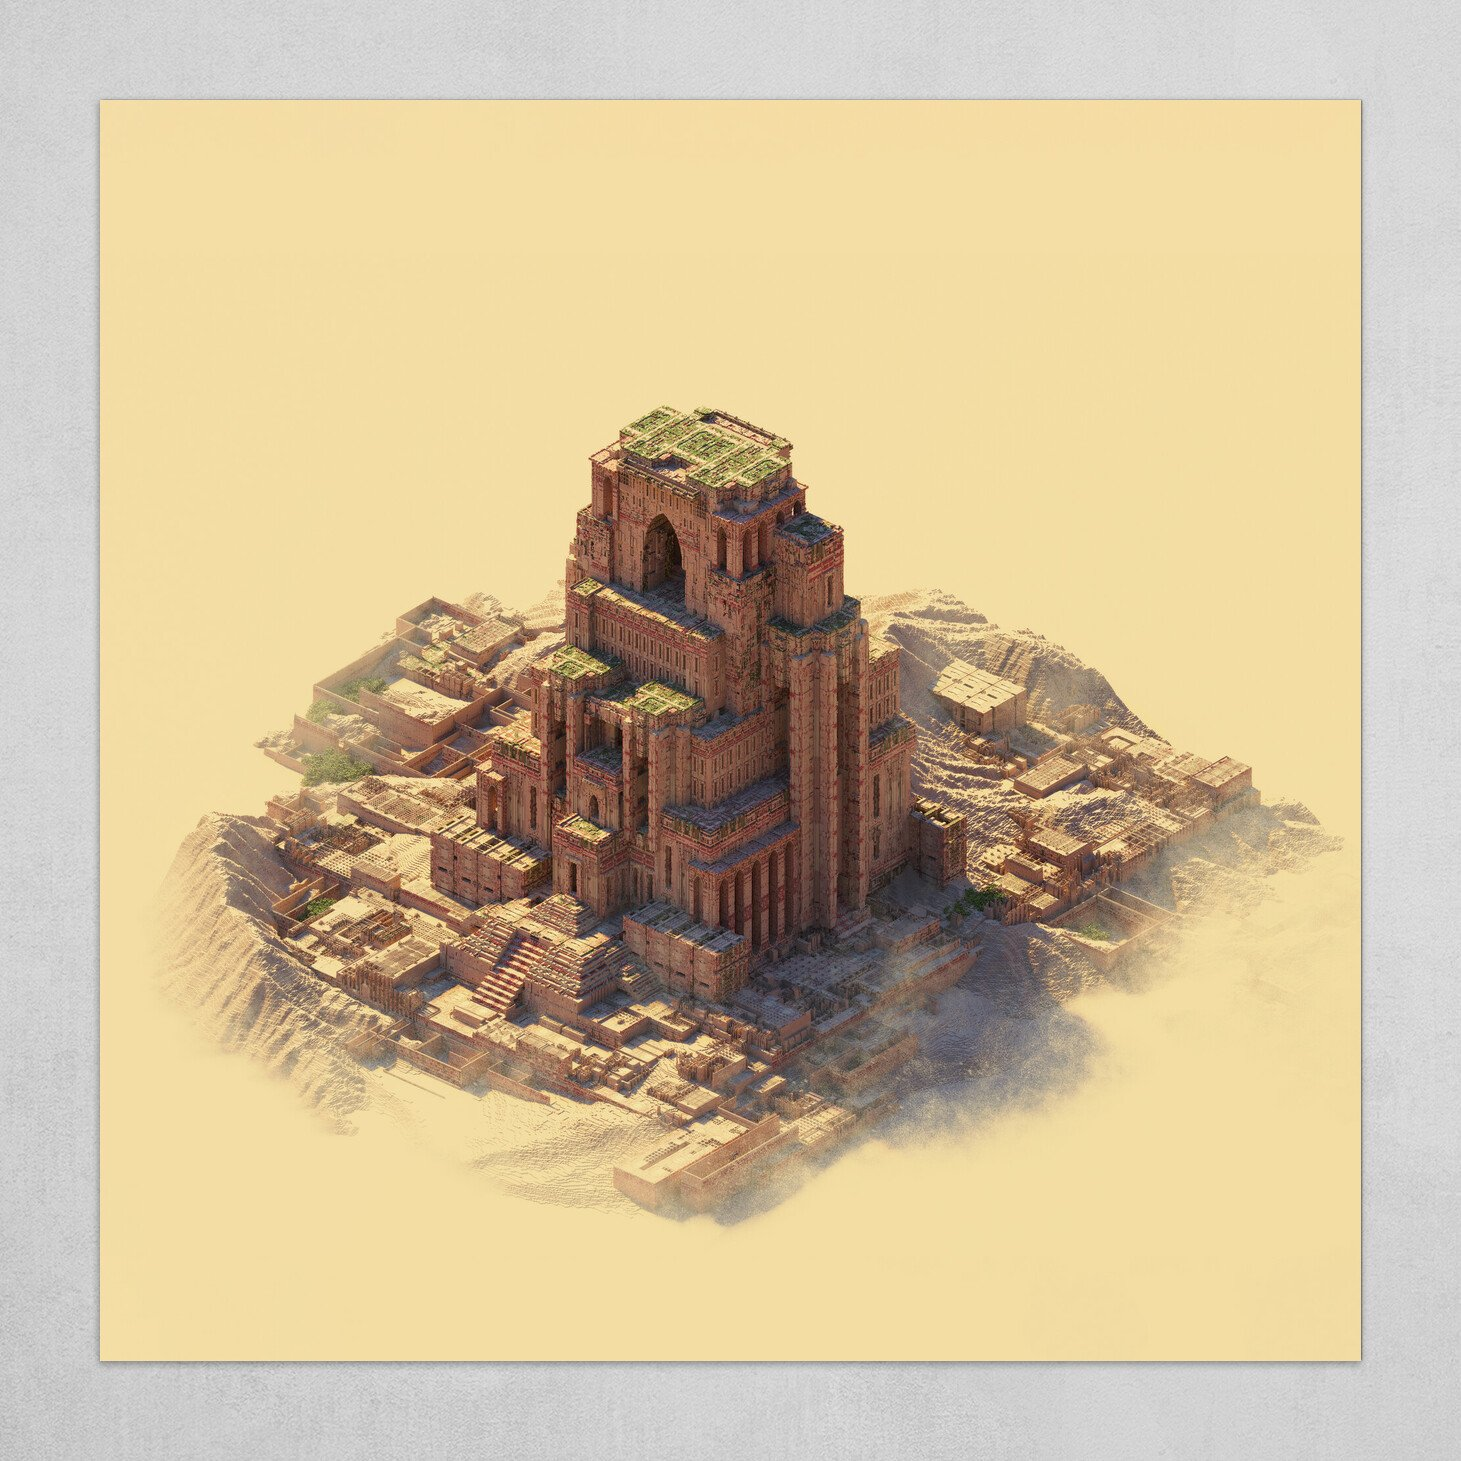 The Lost City of Mithra